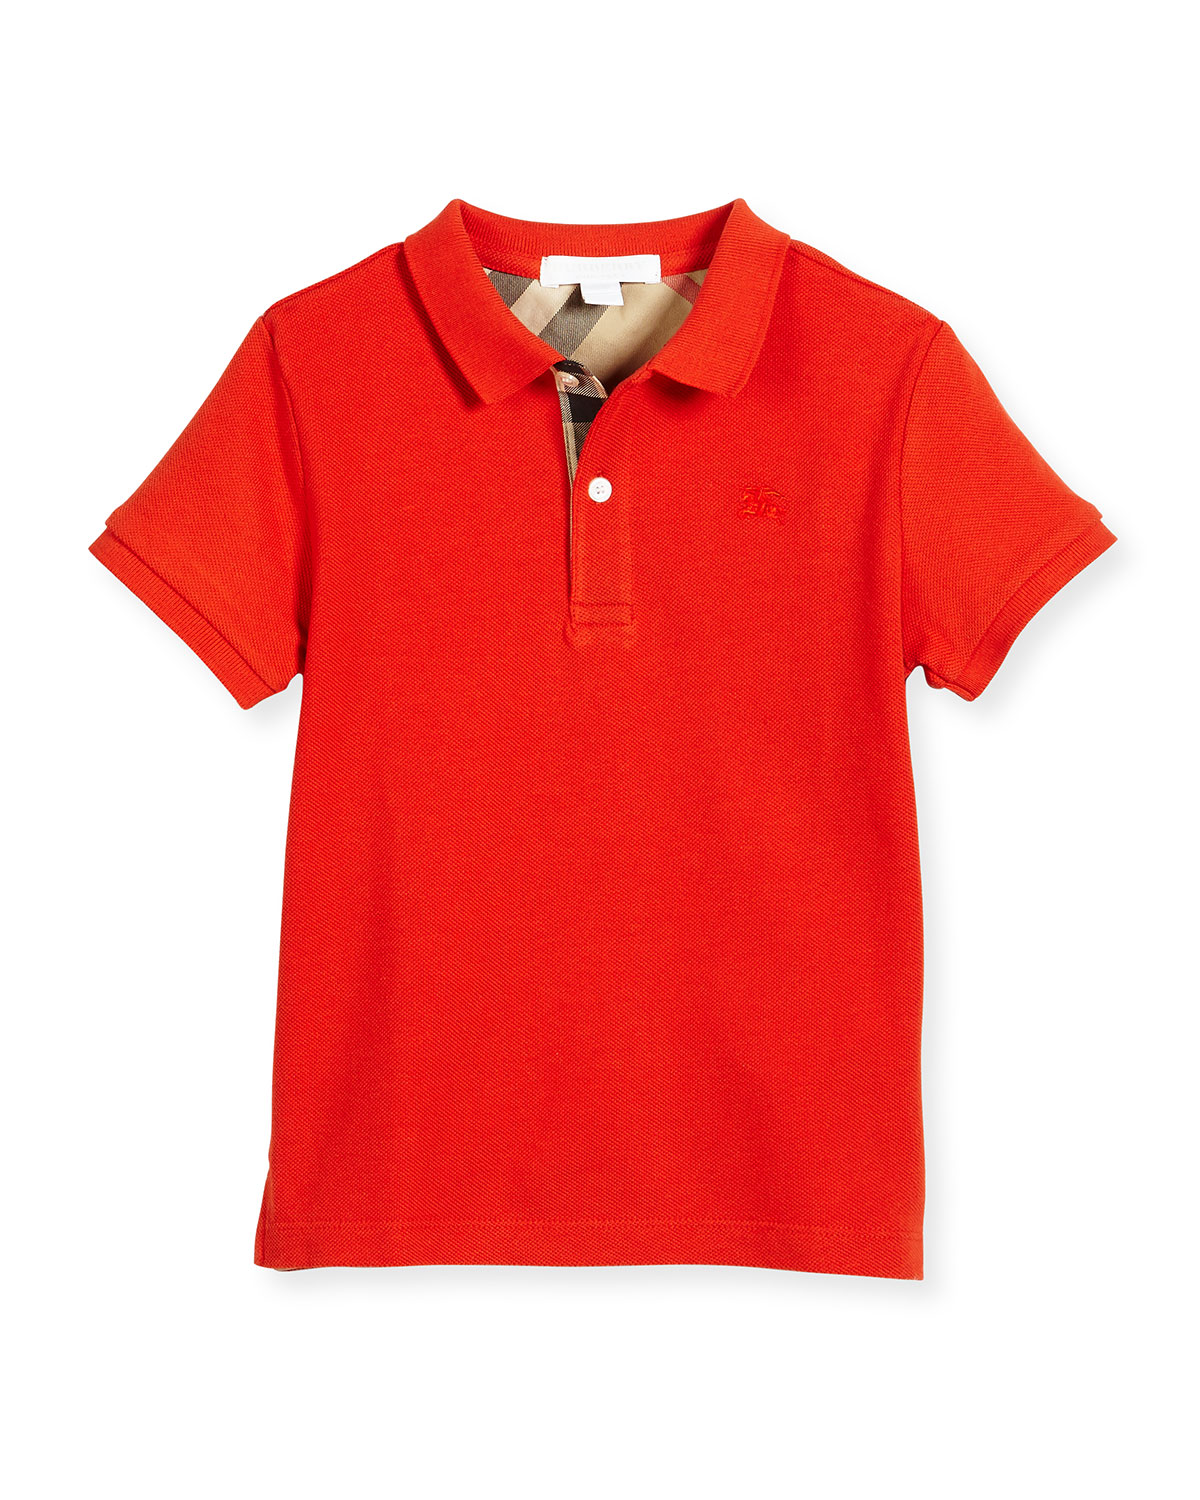 Mini PPM Pique Polo Shirt, Orange-Red, Size 4-14